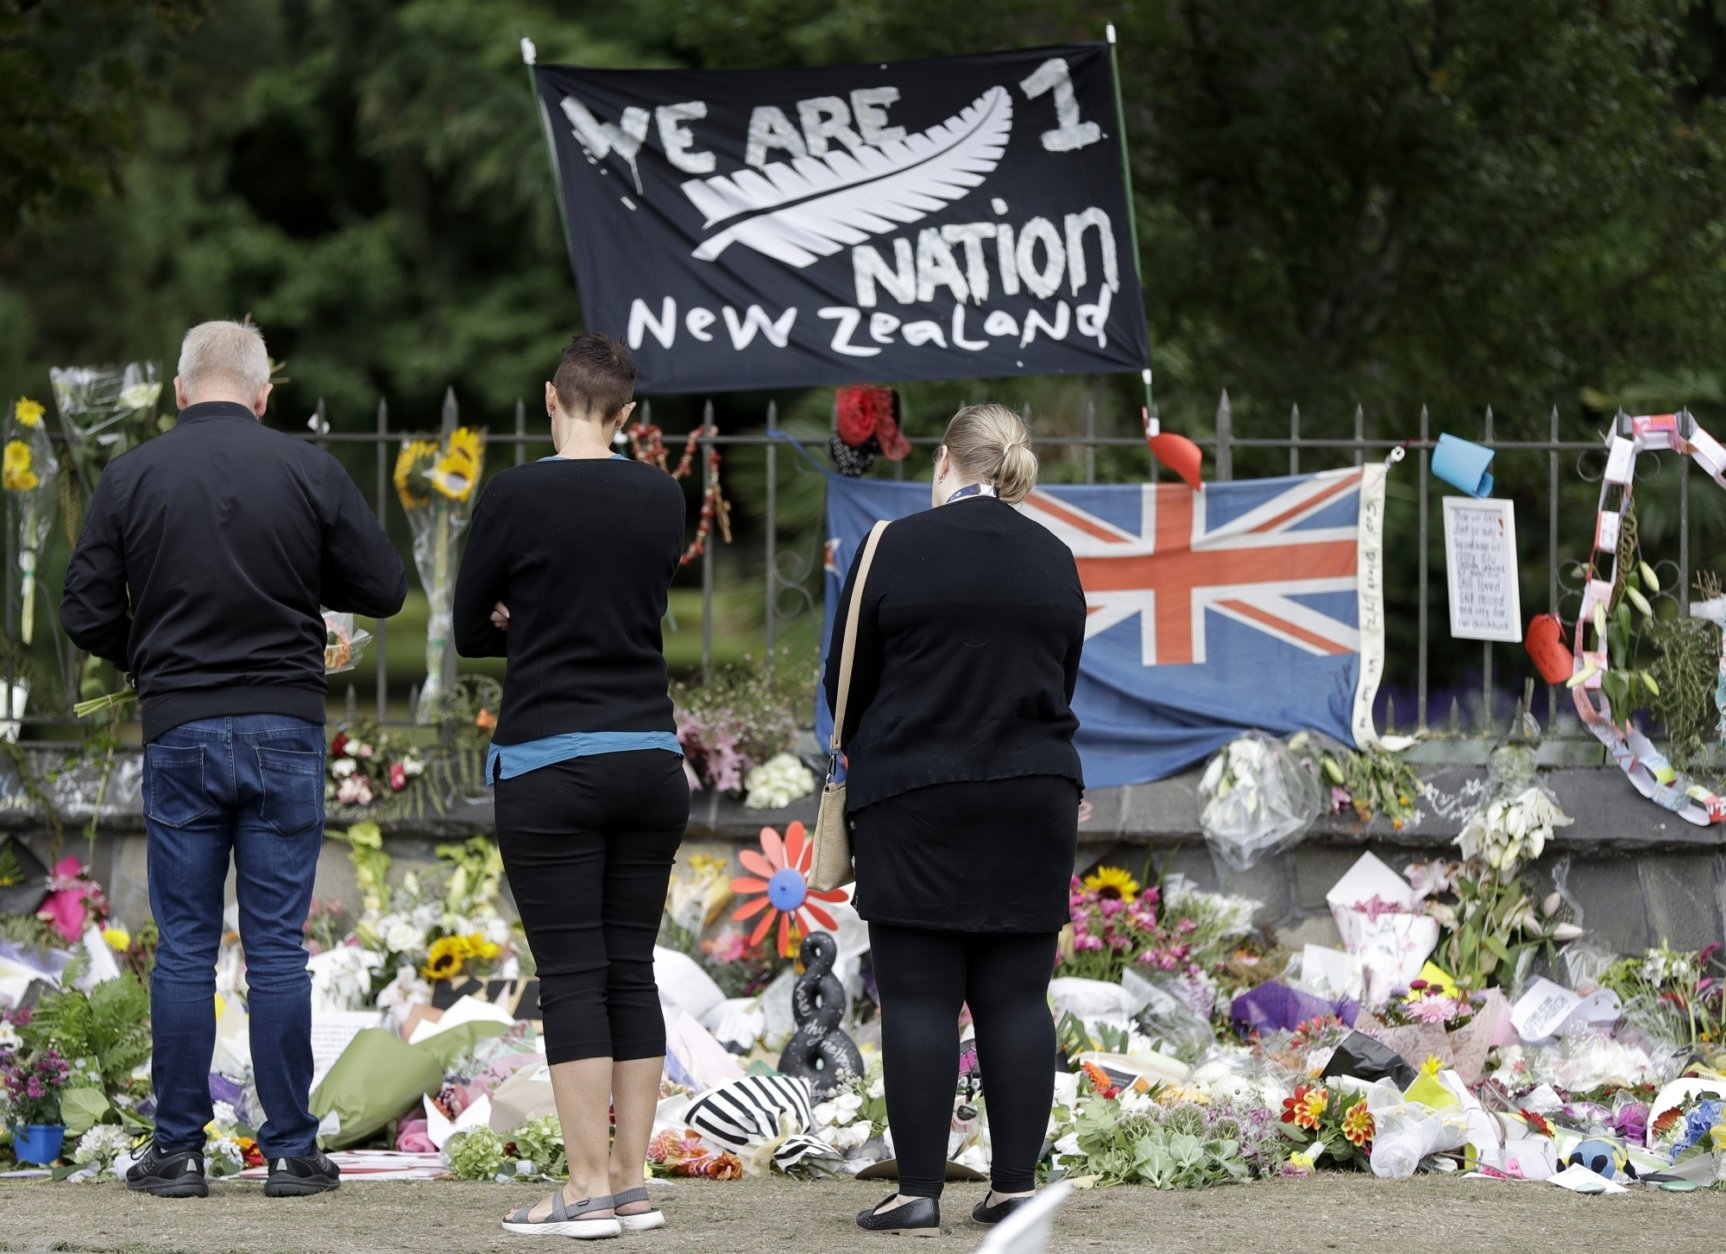 Visitors to the Botanical Gardens look at a floral tribute for the mosque shootings in Christchurch, New Zealand, Thursday, March 21, 2019. Thousands of people were expected to come together for an emotional Friday prayer service led by the imam of one of the two New Zealand mosques where 50 worshippers were killed in a white supremacist attack on Friday March 15. (AP Photo/Mark Baker)